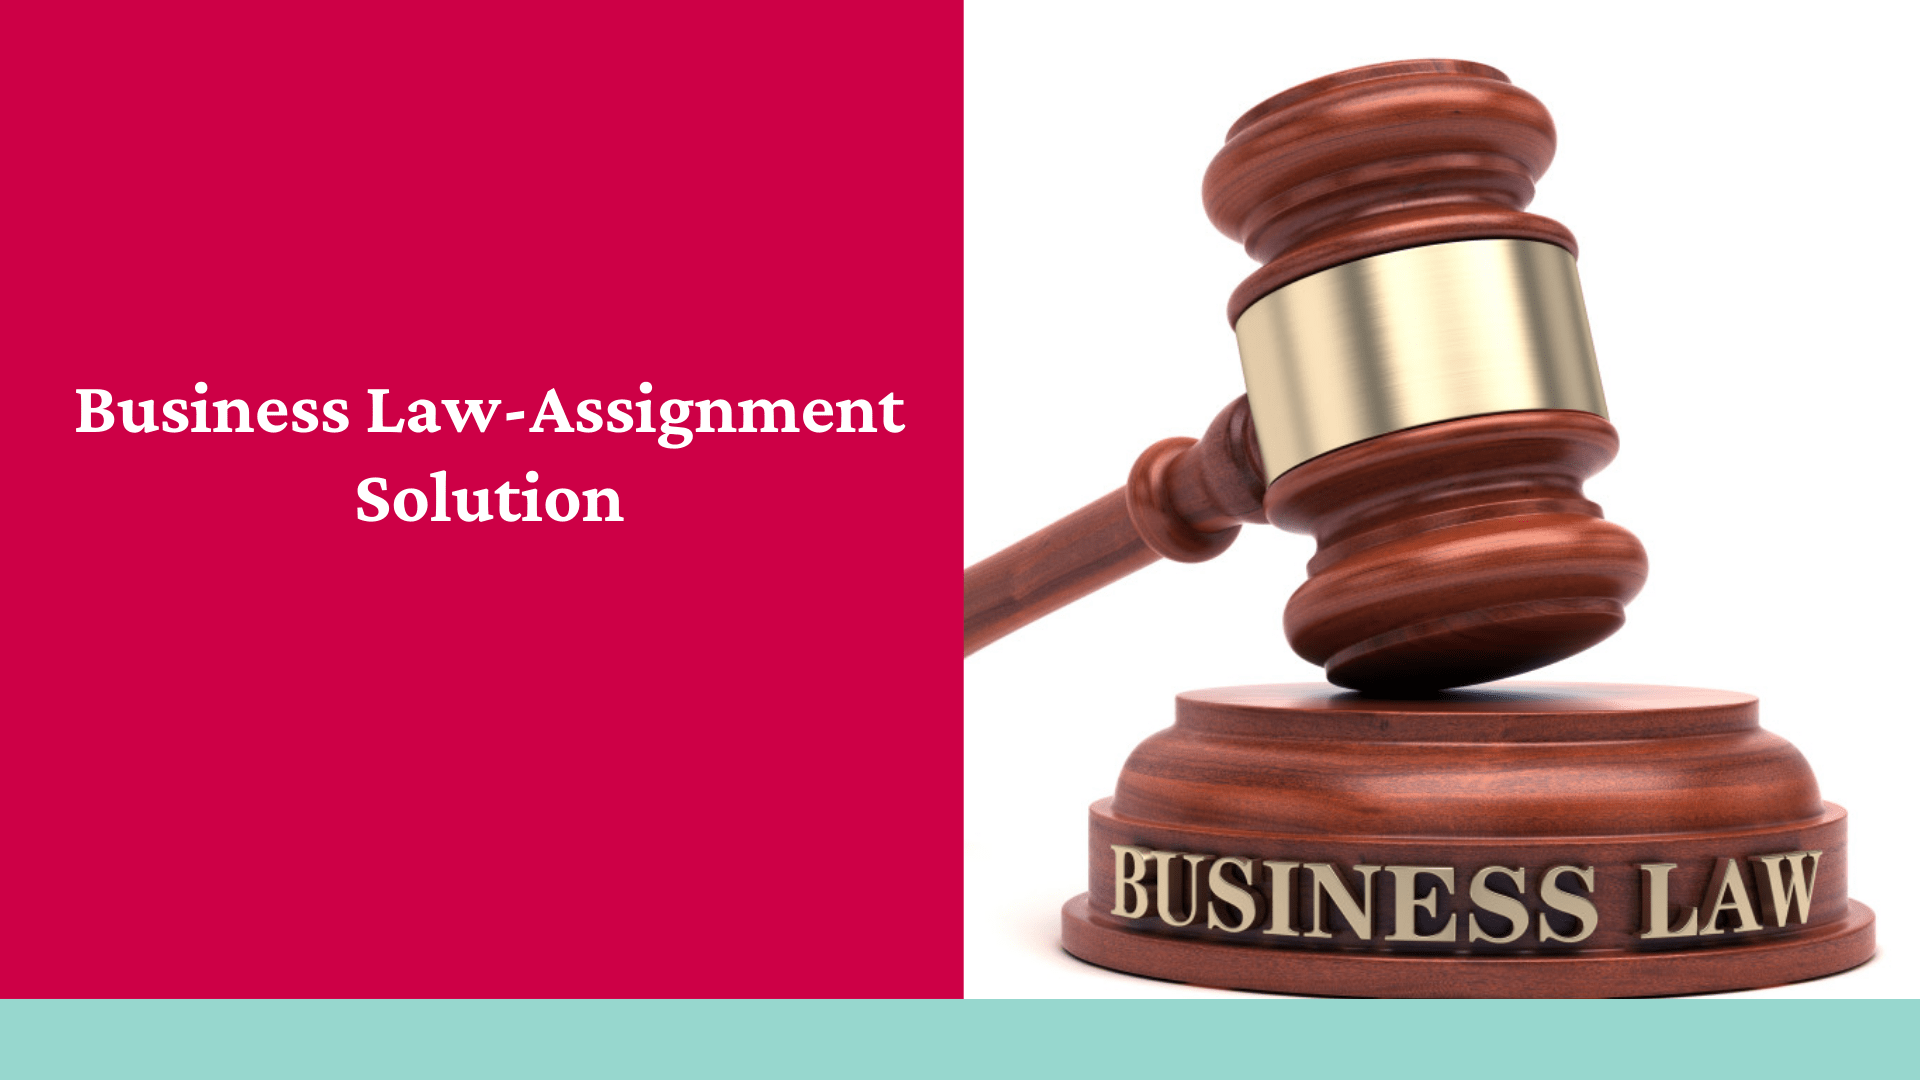 Business Law-Assignment Solution